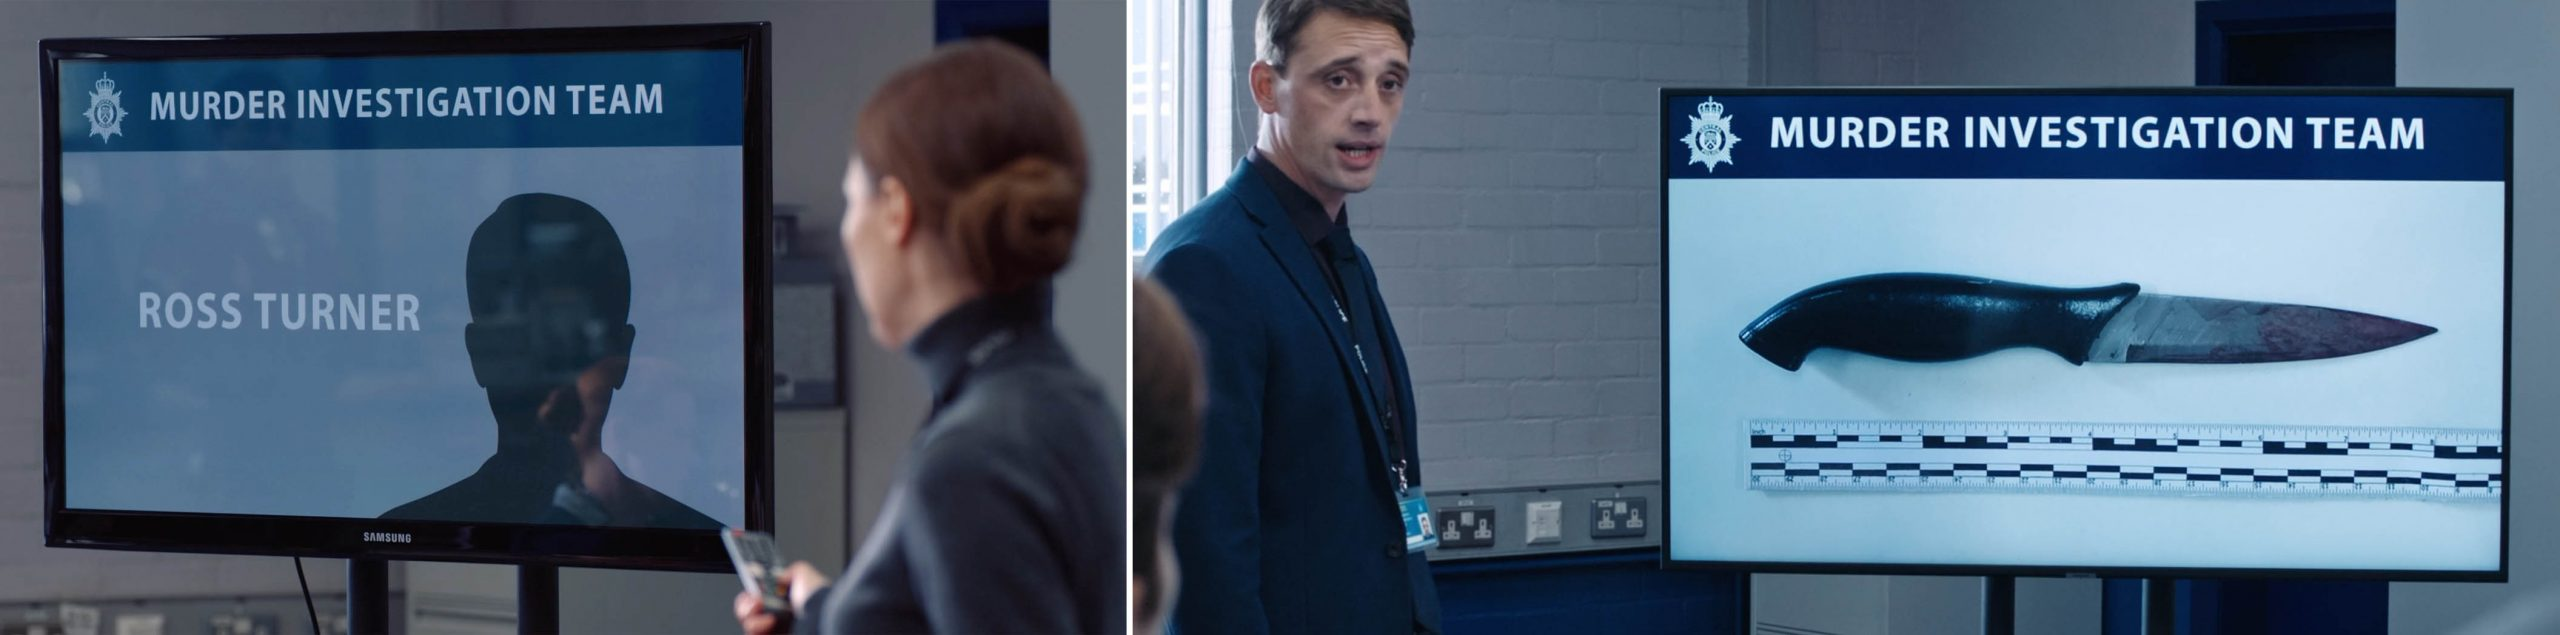 Samsung product placement in season 6 of LINE OF DUTY